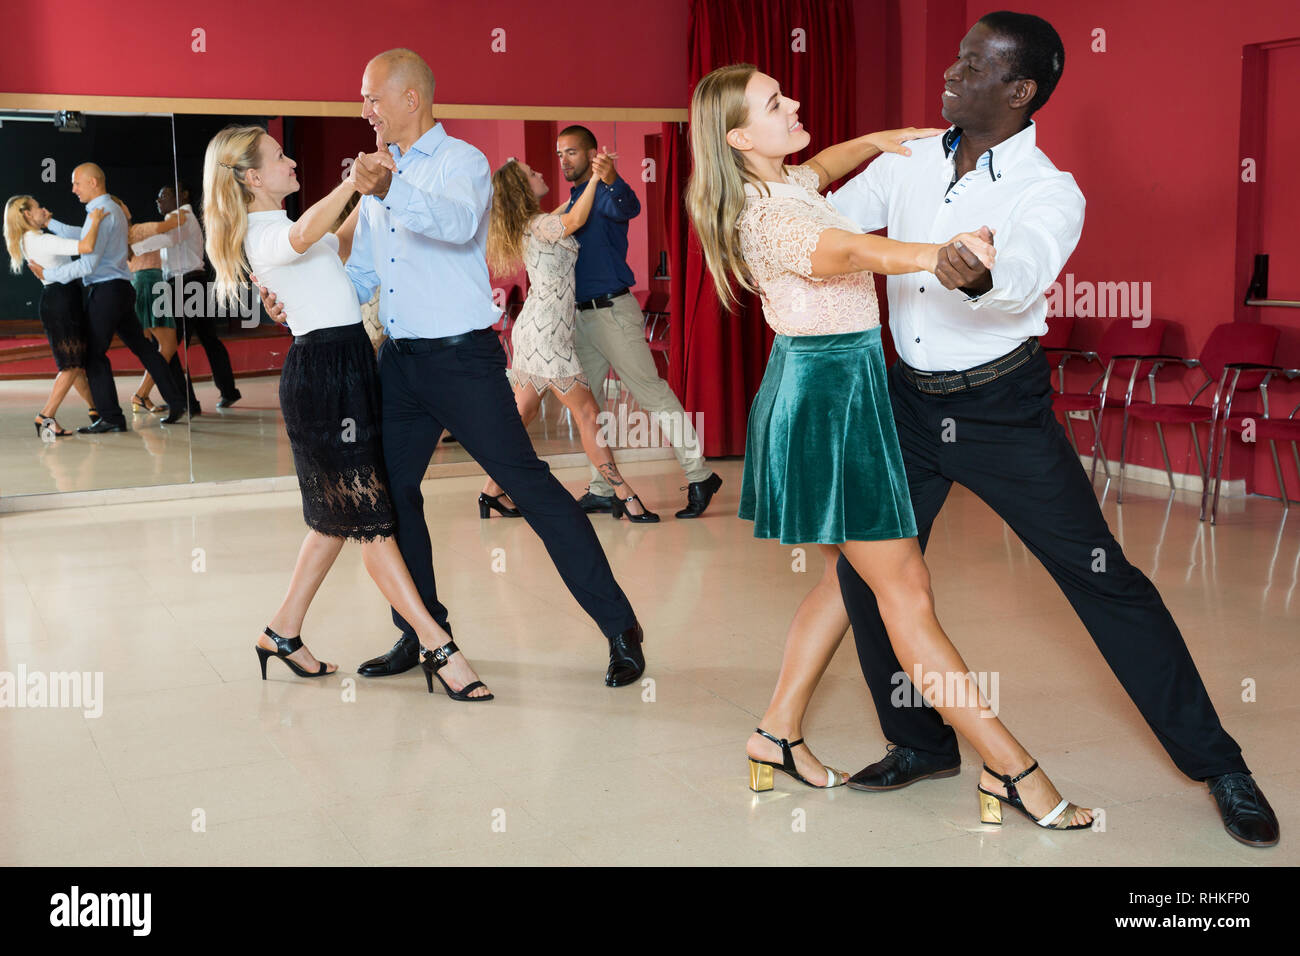 Young Positive People Dancing Together Slow Ballroom Dances In Pairs Stock Photo Alamy